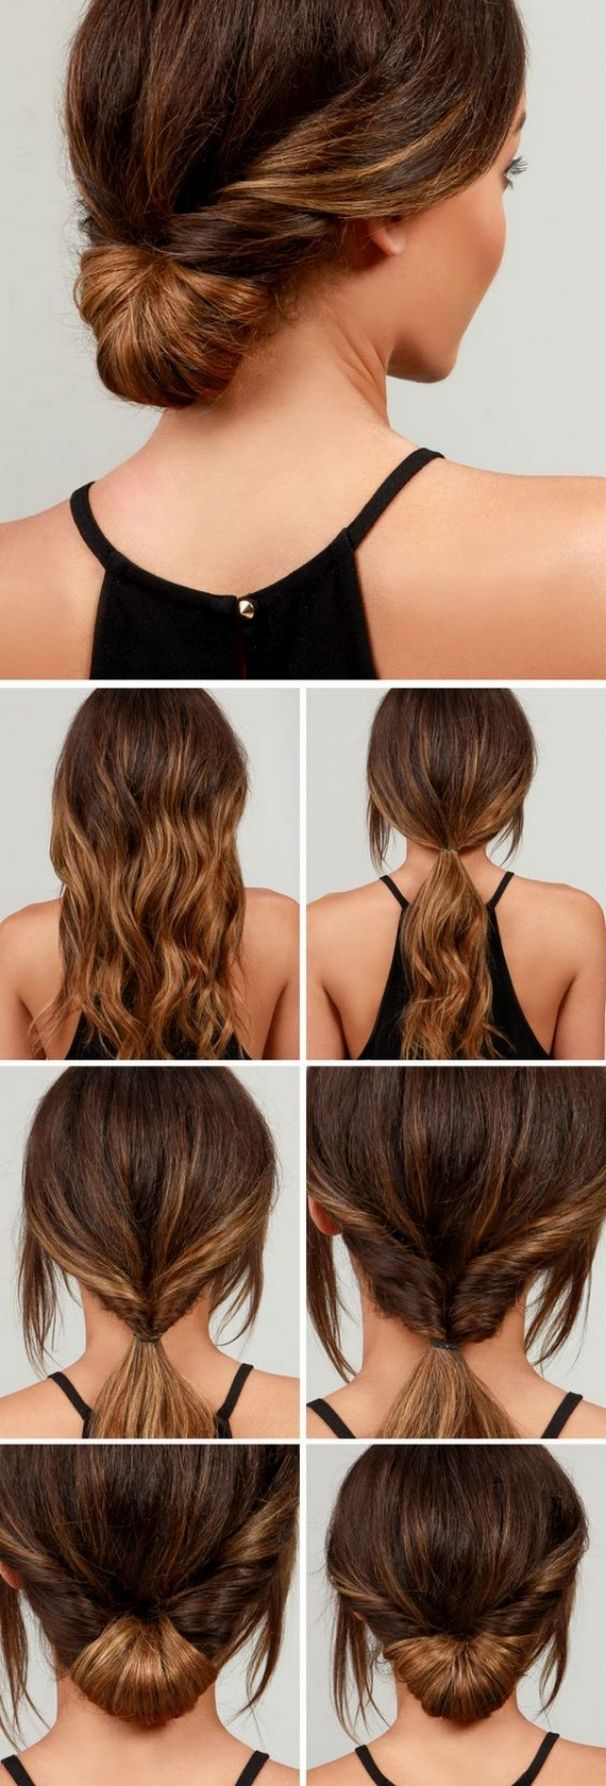 Pin by olivia friesen on beauty pinterest easy summer hairstyles